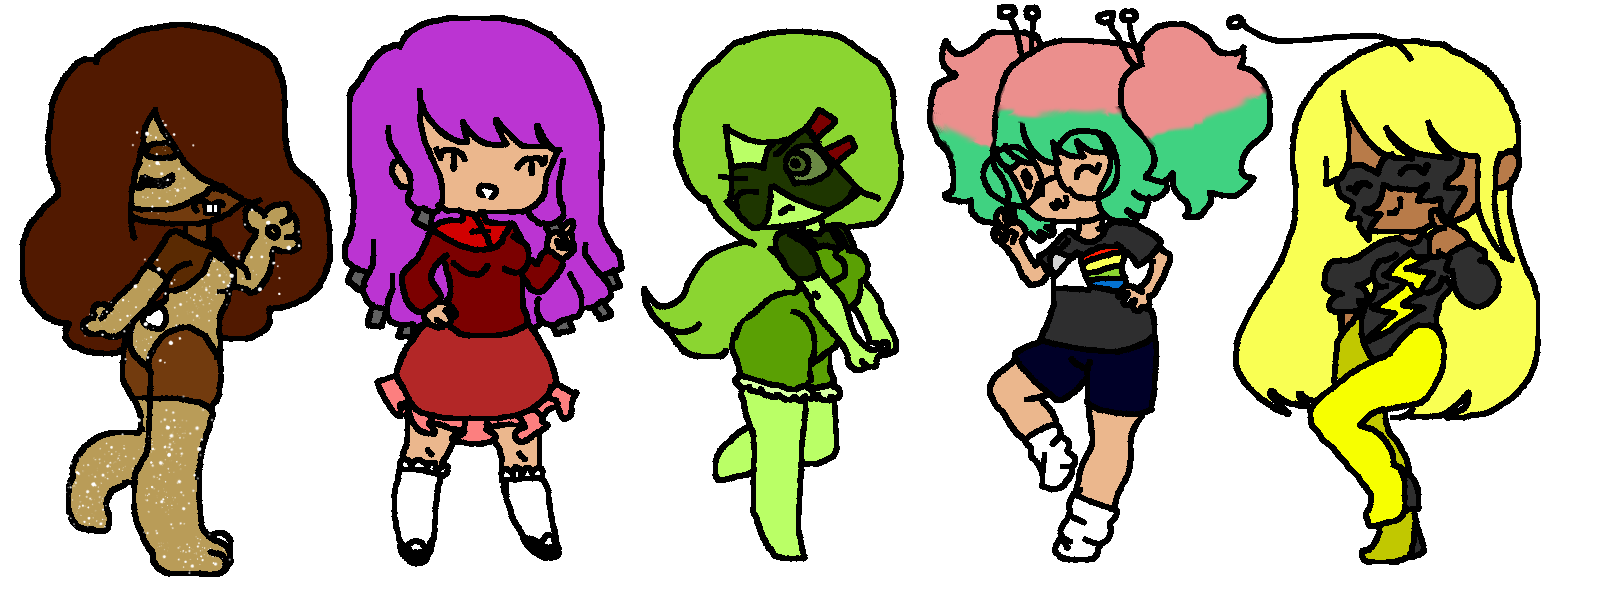 I drew all of my OC's! comment if you want to know more about any of them!